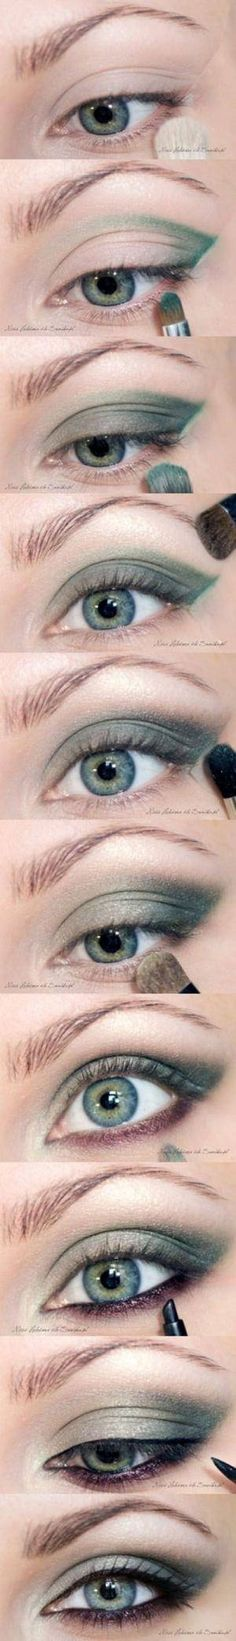 green smokey eyeshadow